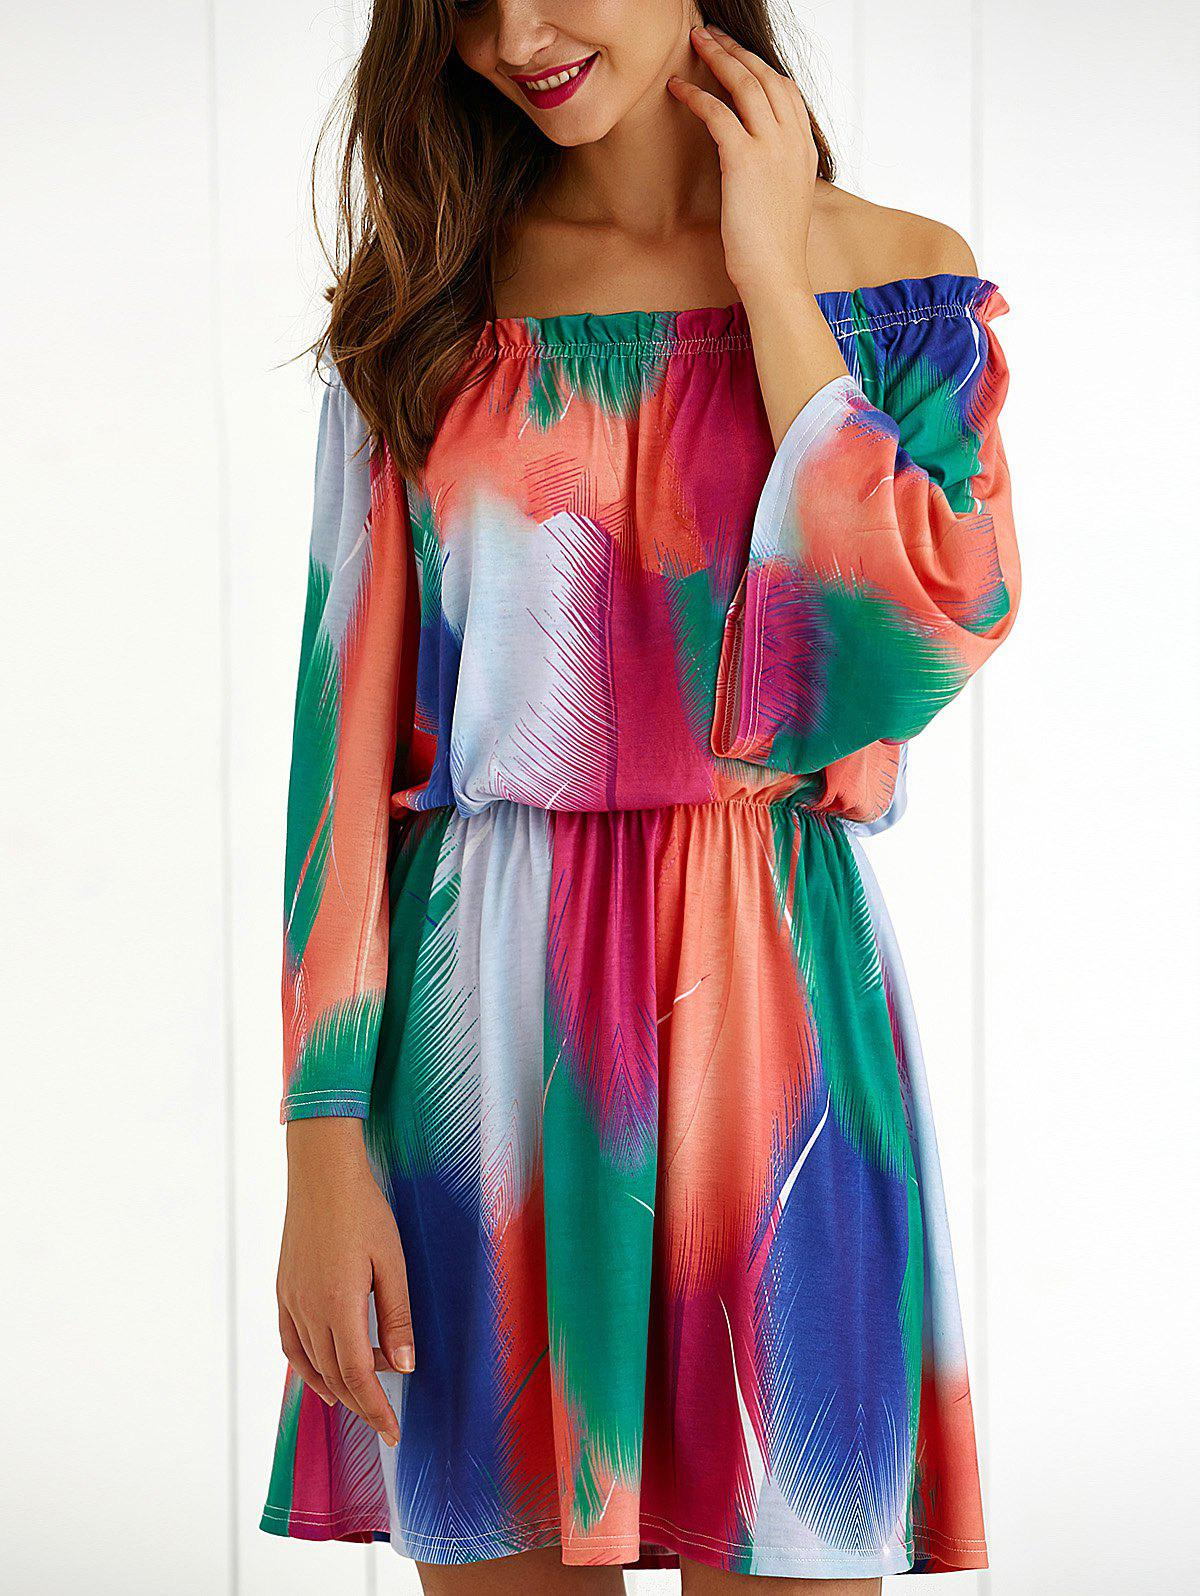 Off The Shoulder 3/4 Sleeve Colorful Dress - COLORMIX XL